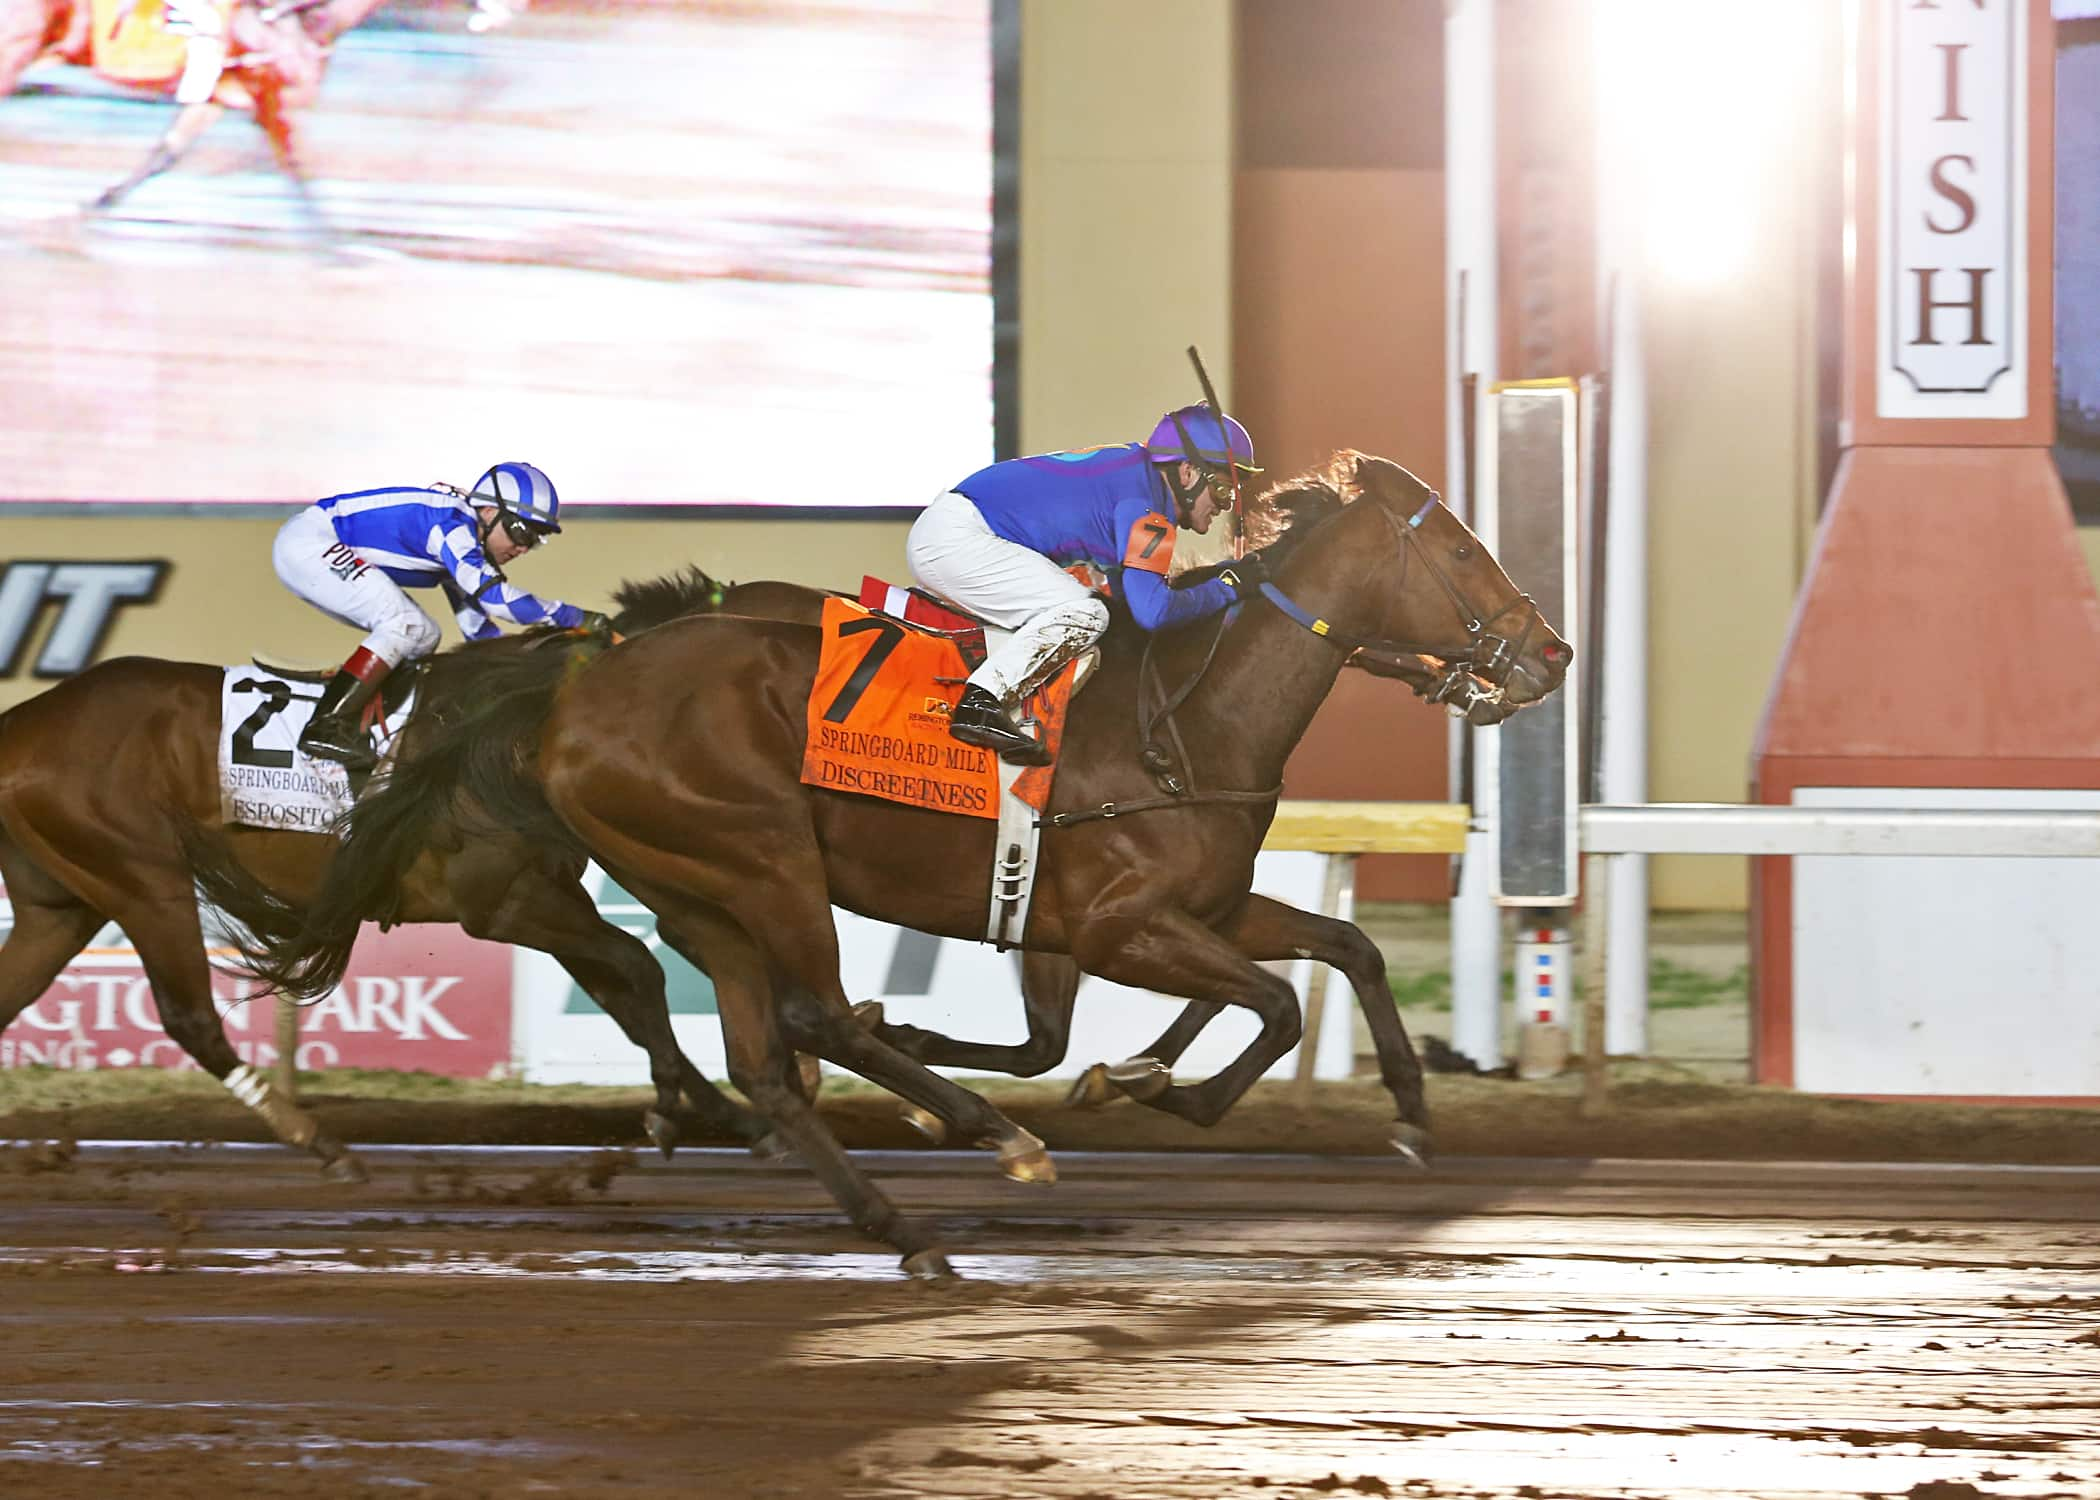 Discreetness rolled from the back to win the 2015 $250,000 Springboard Mile, Remington Park's top 2-year-old race of the season - Photo Credit: Dustin Orona Photography